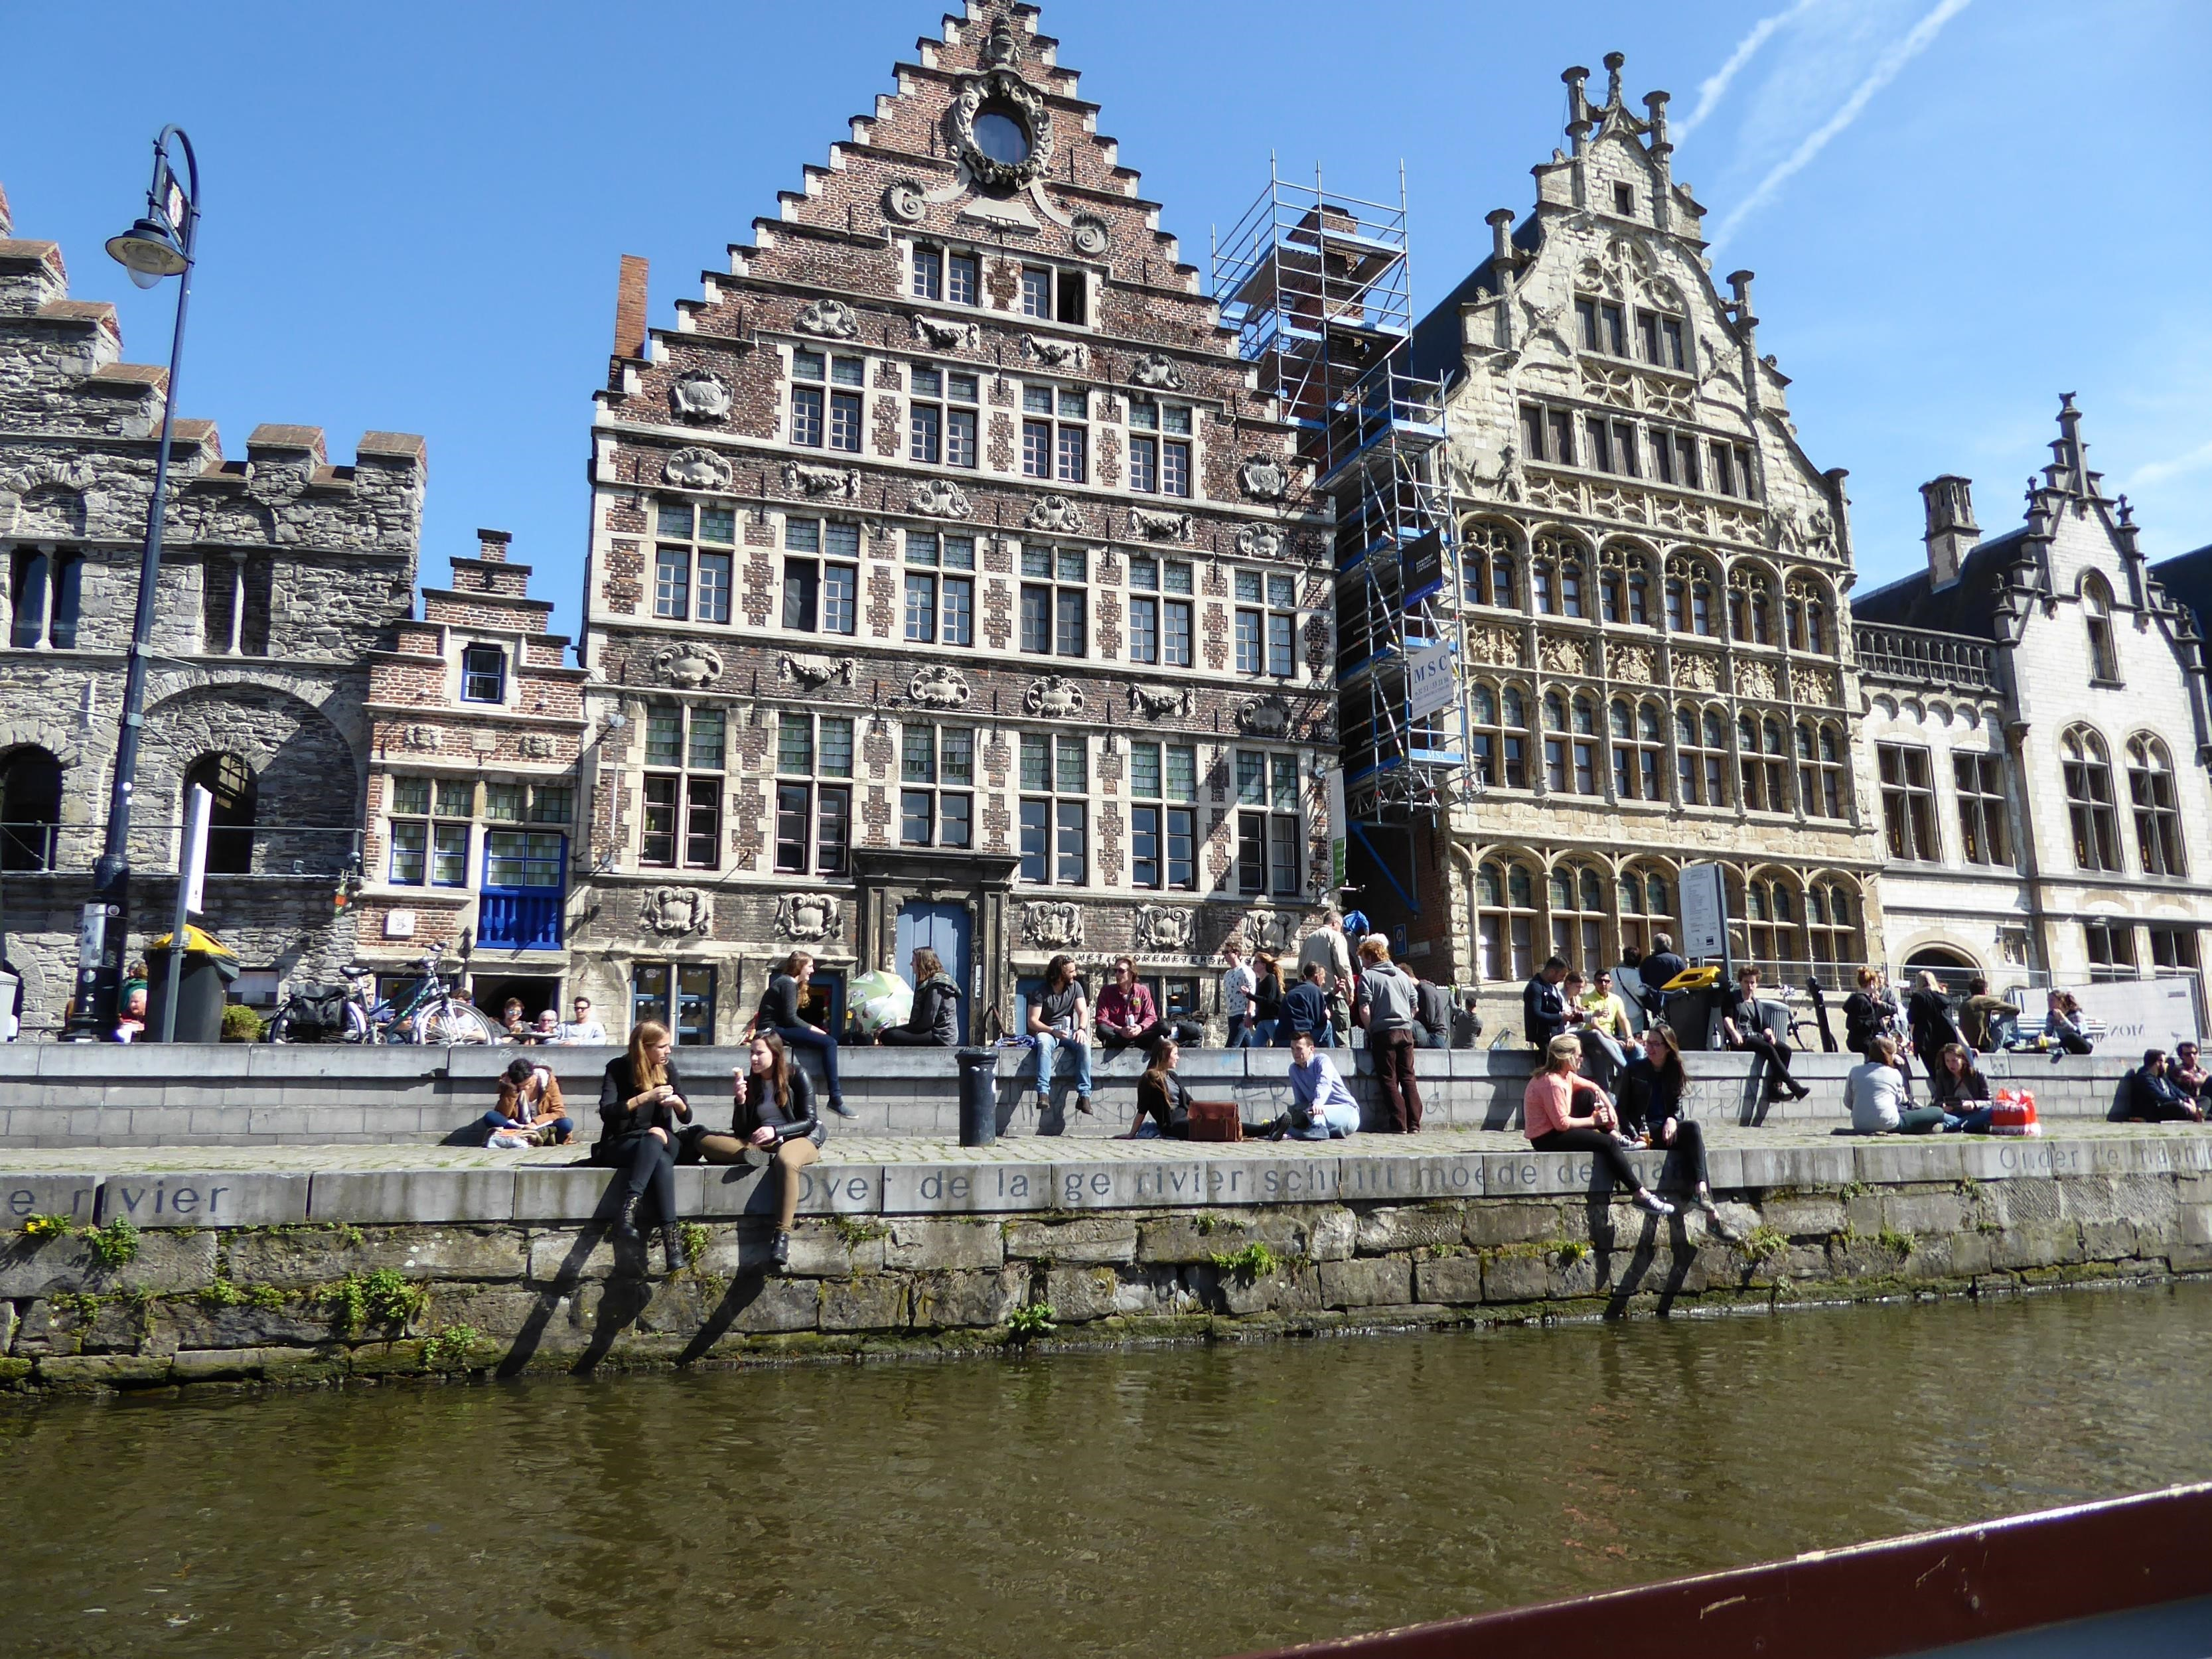 The famous Graslei along the River Leie in Gent